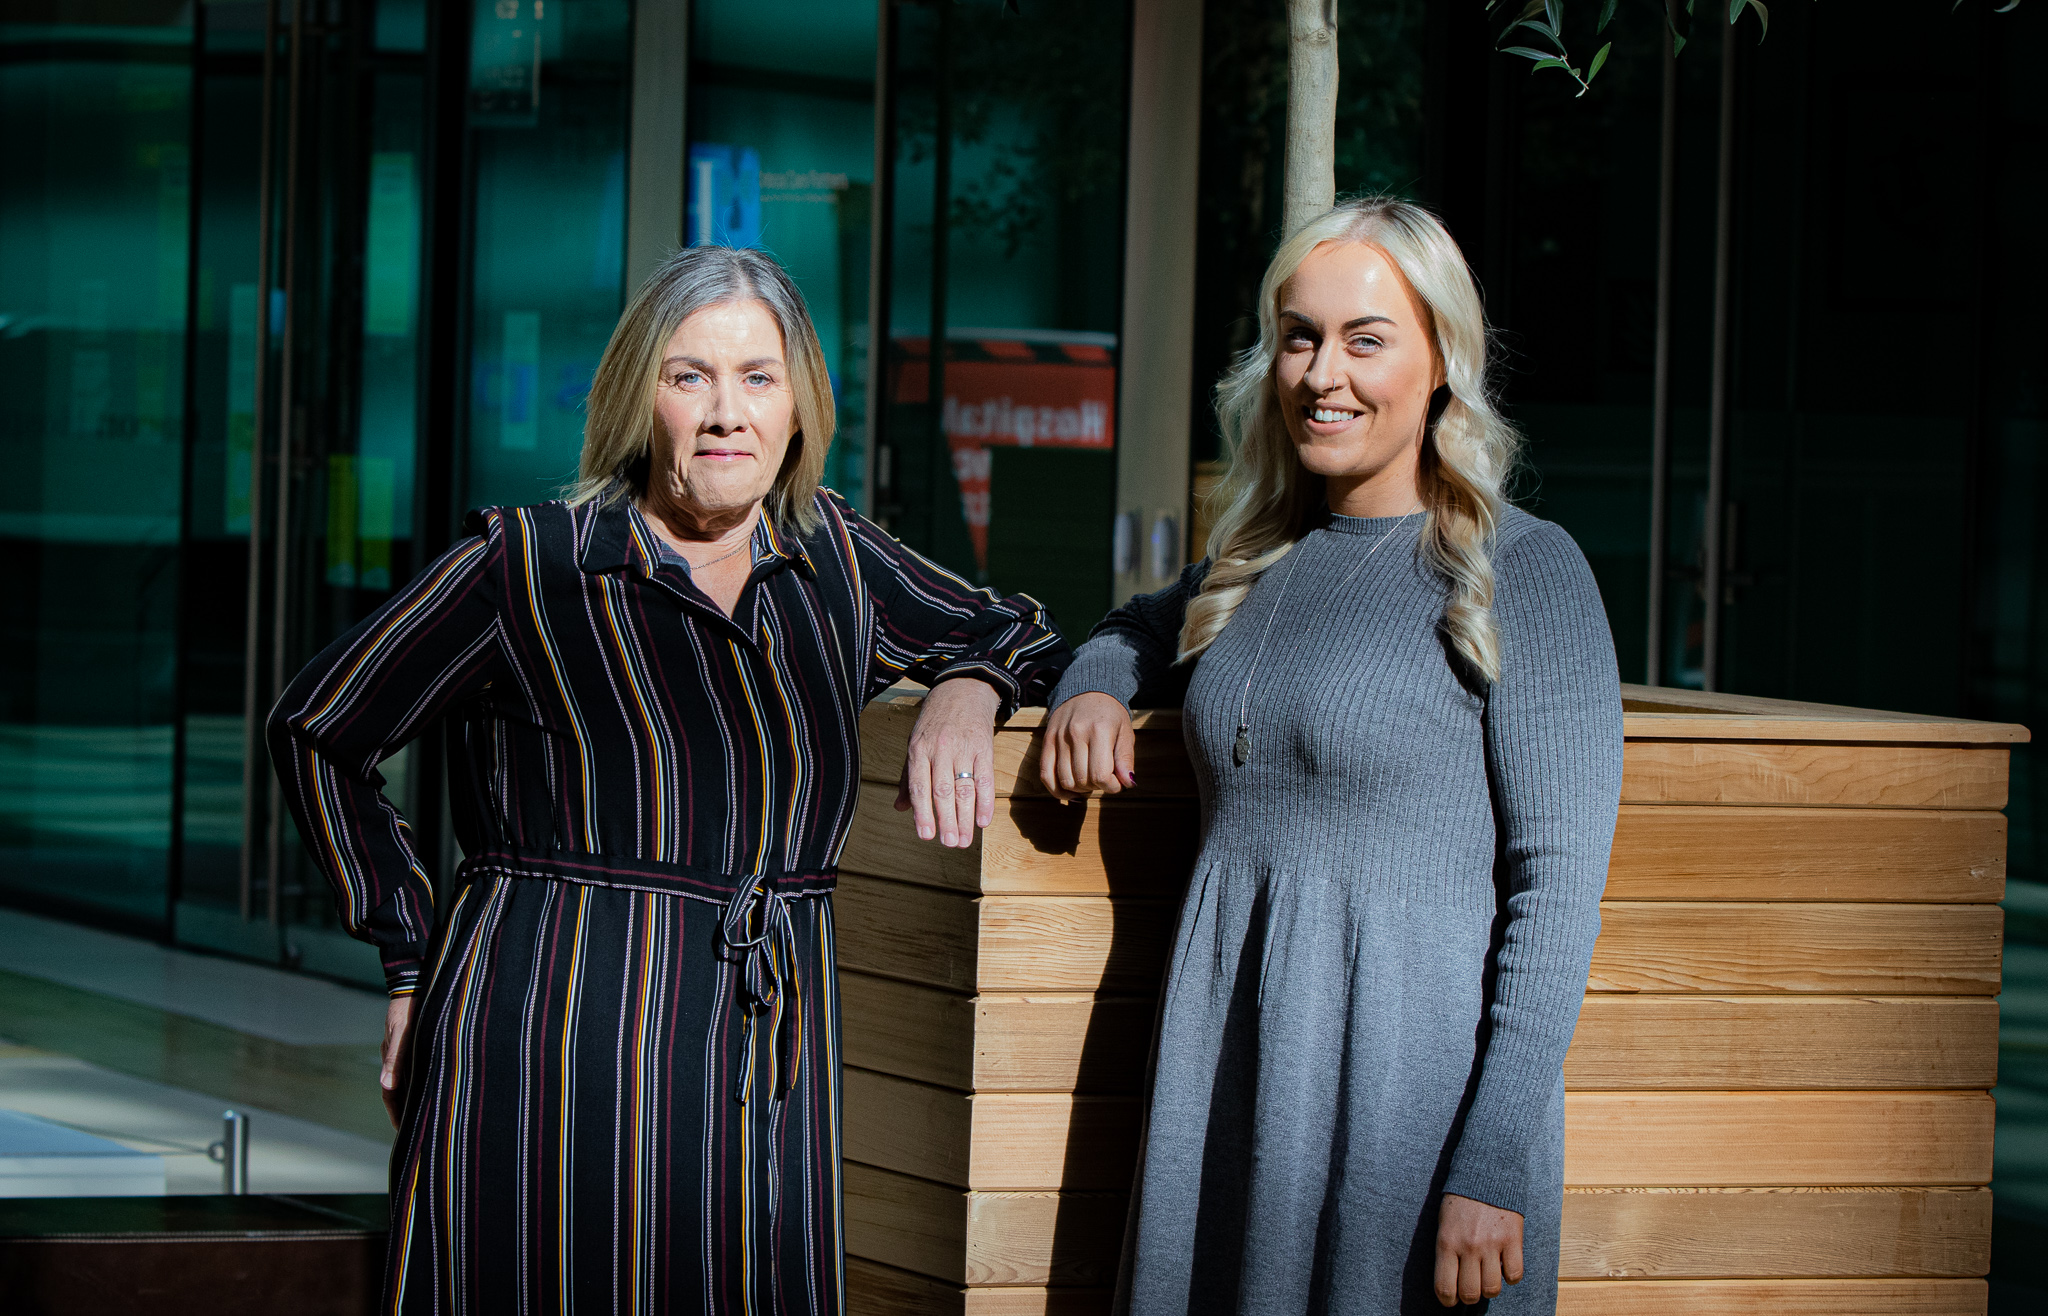 Jeanette and Sarah – The Mother and Daughter Weight Loss Story